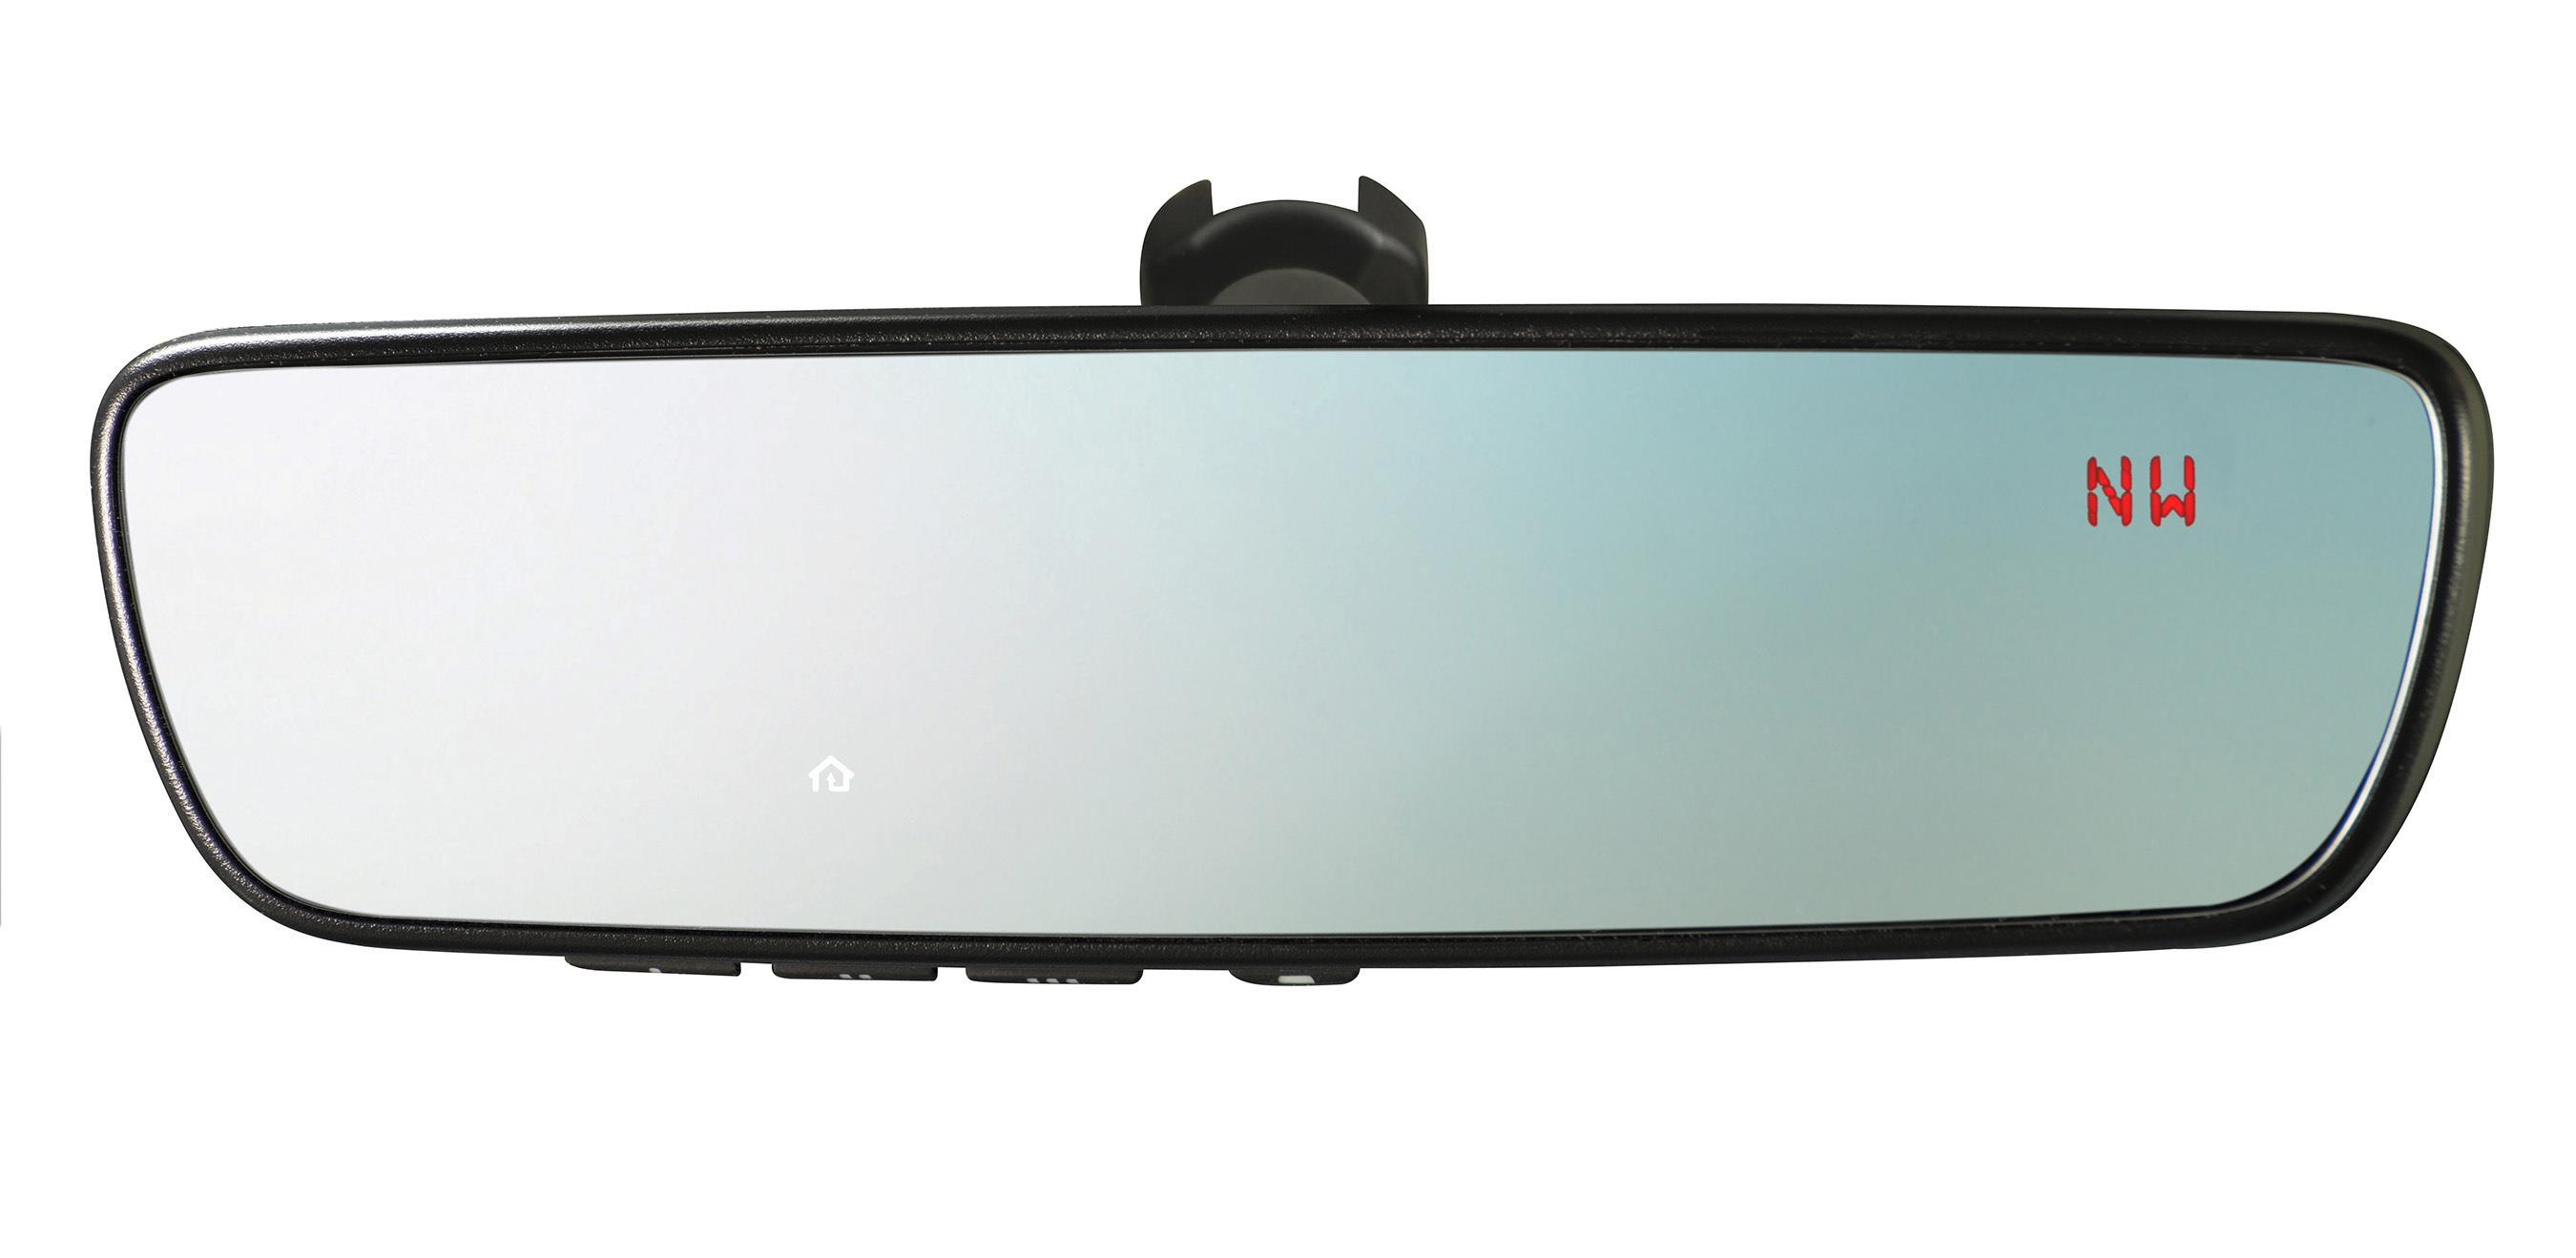 2019 Subaru Outback Auto-dimming Mirror With Compass And Homelink U00ae - H501ssg304